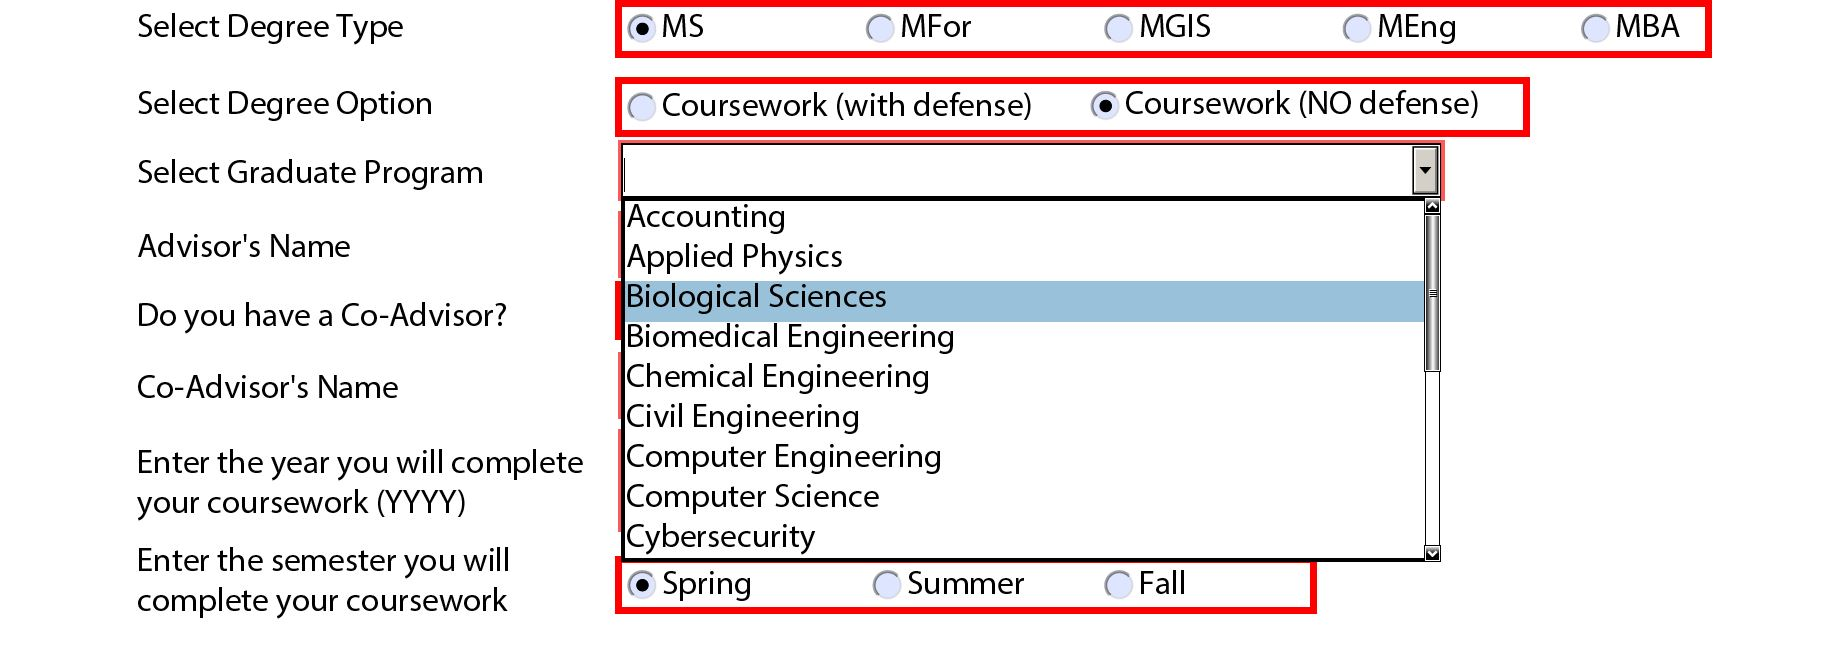 Grad Program Dropdown